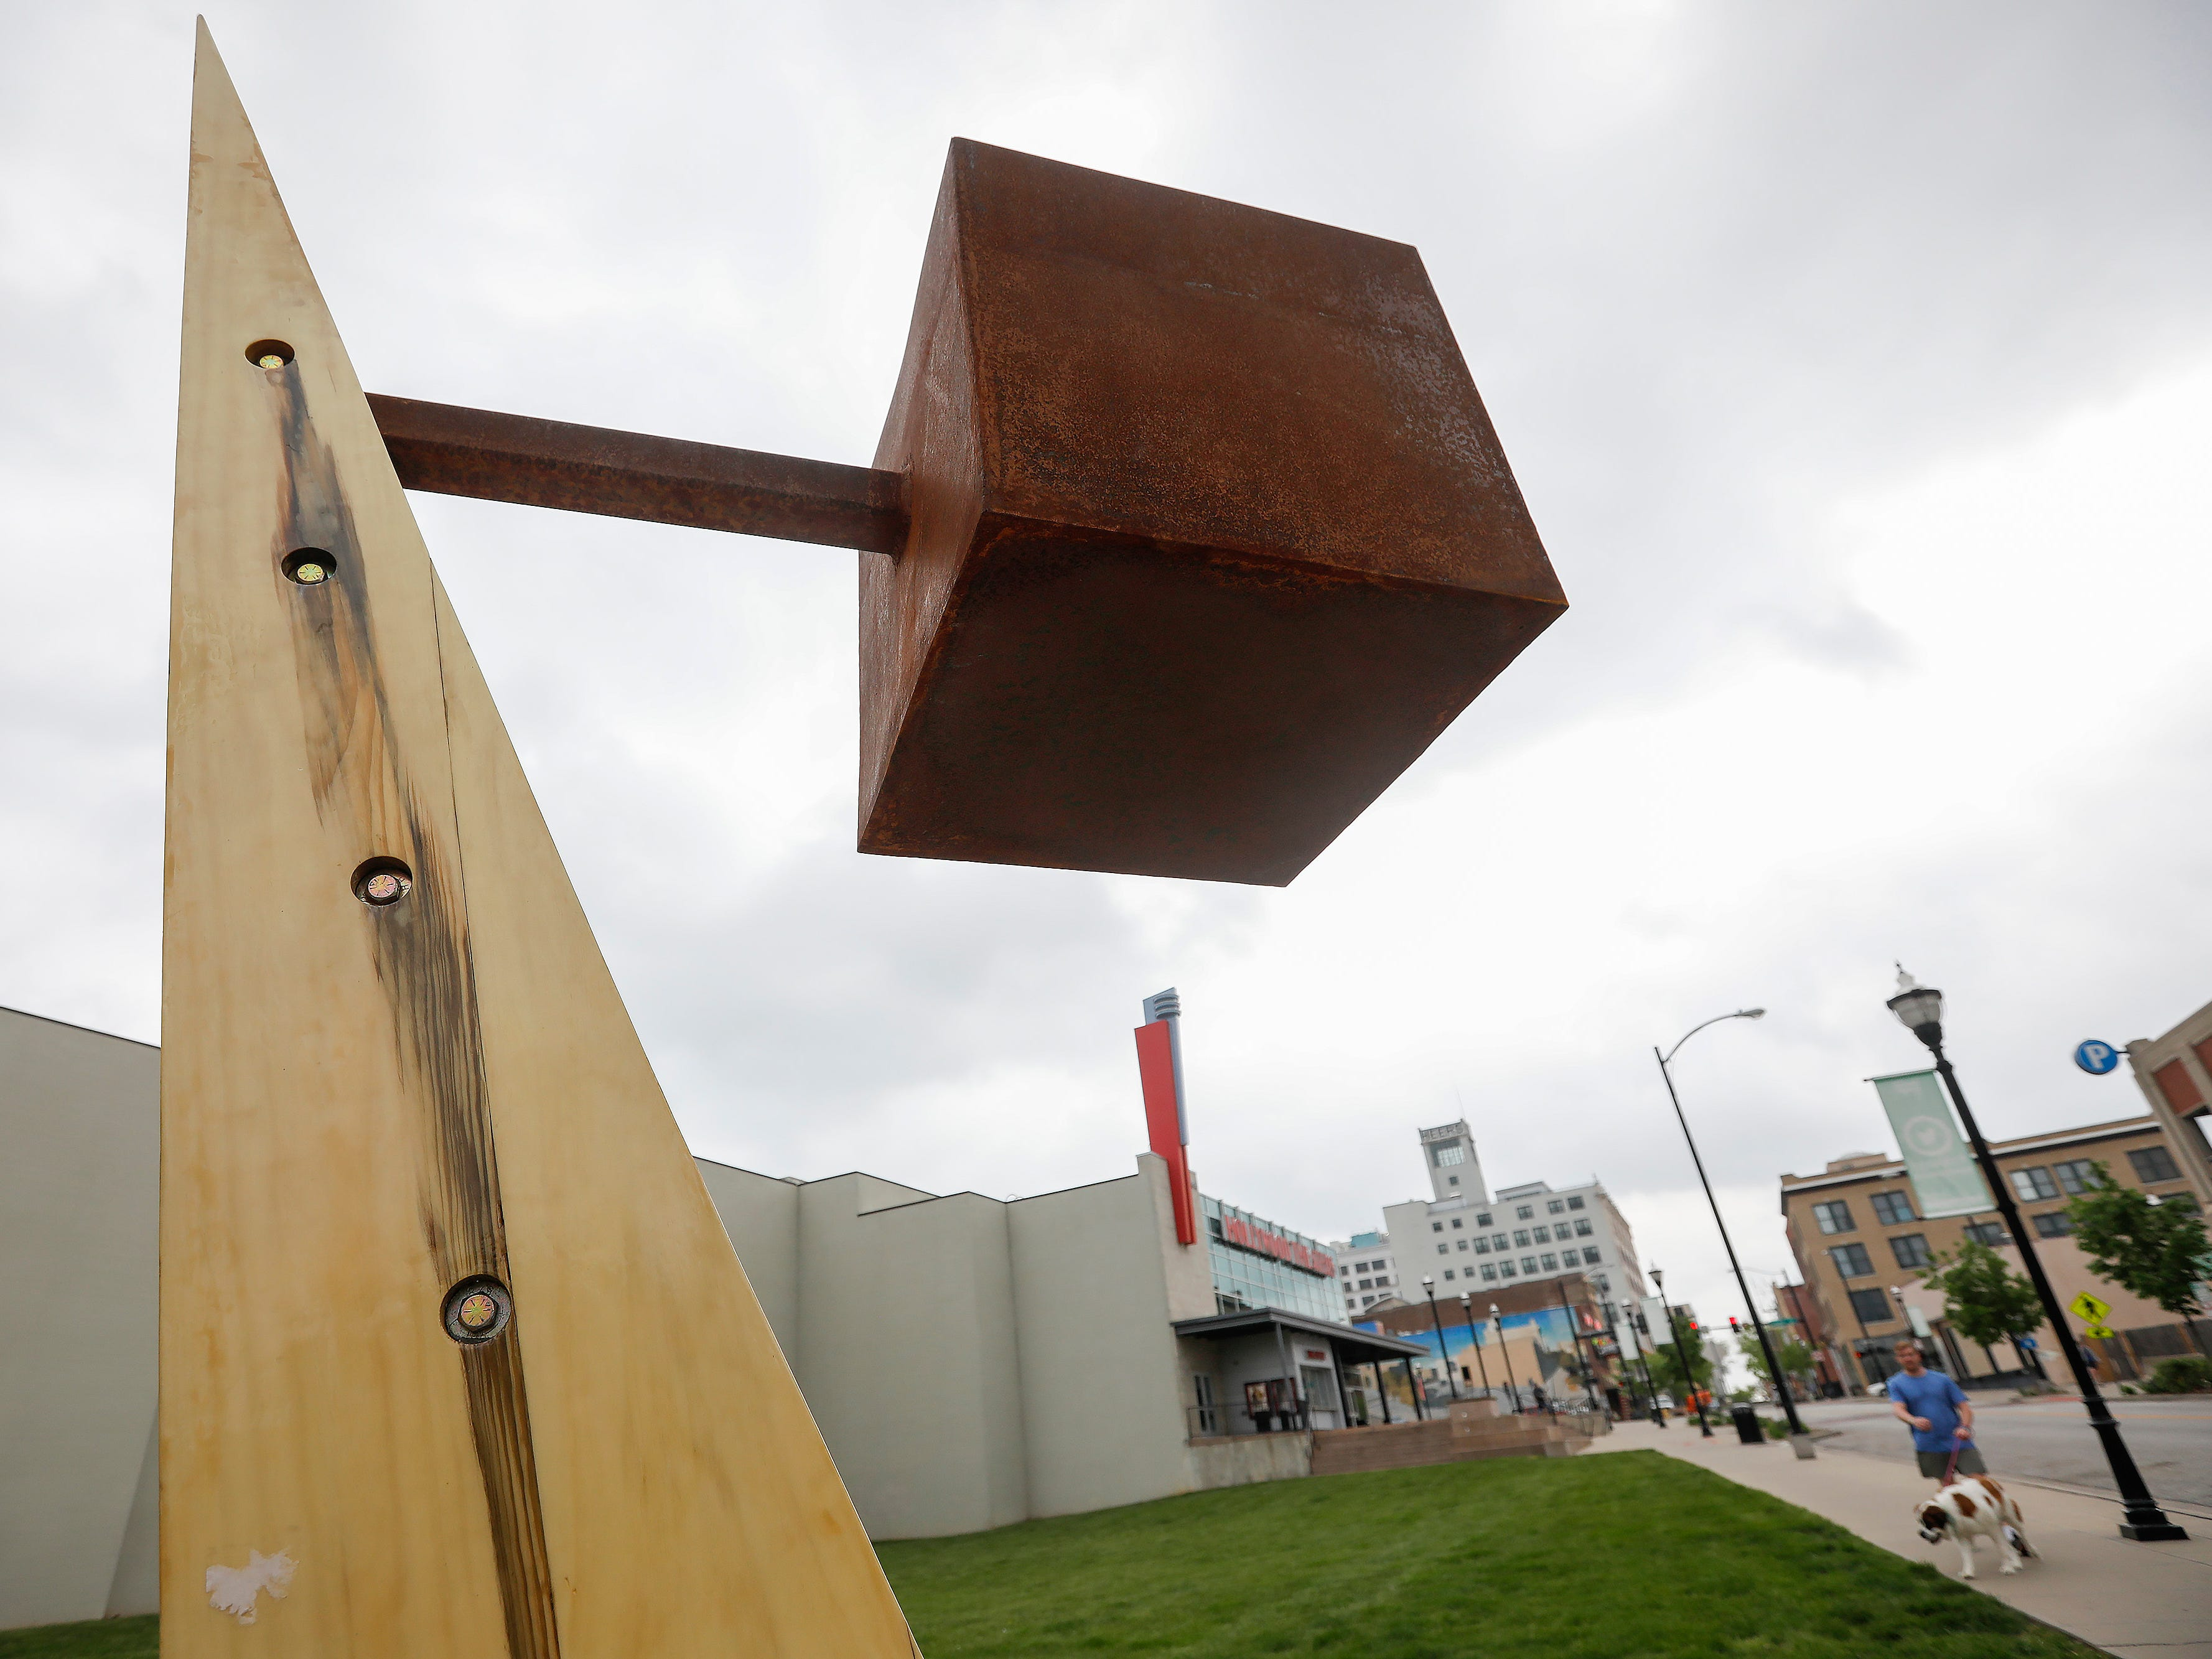 """Natural Balance"" by Jeffrey Barrett is located on College Street and Main Avenue."